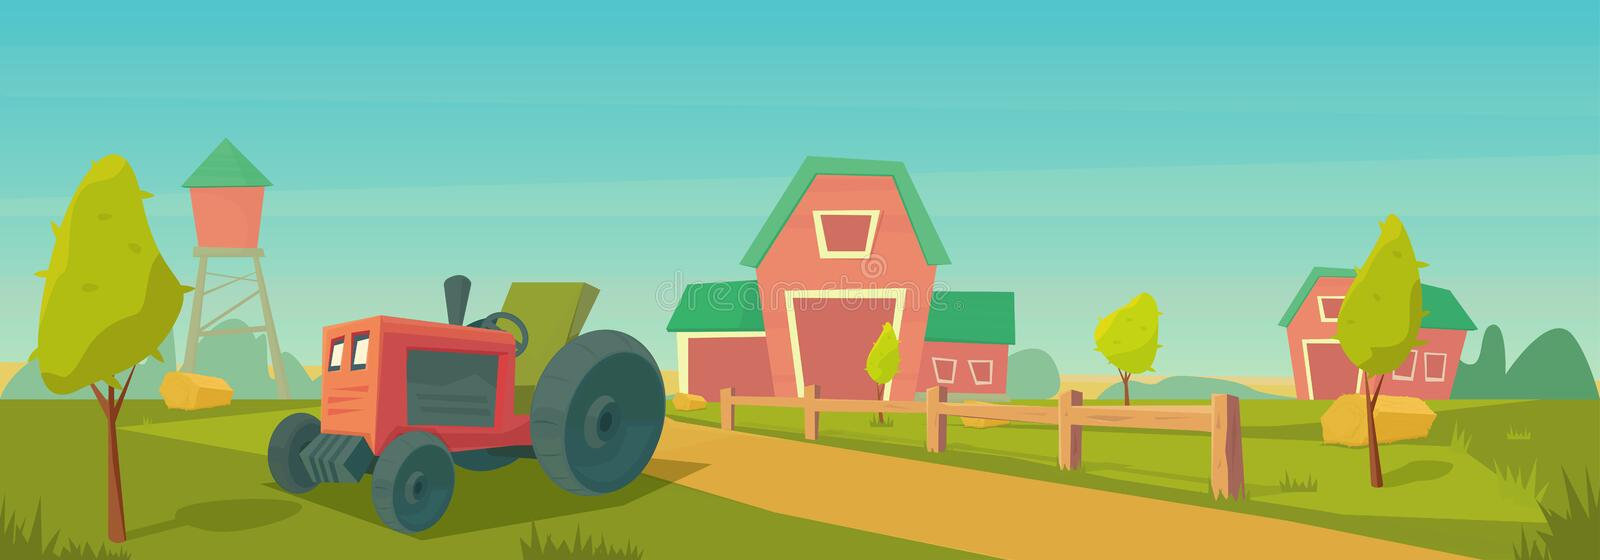 Agriculture. Farm rural landscape with red barn, tractor. Vector cartoon illustration vector illustration